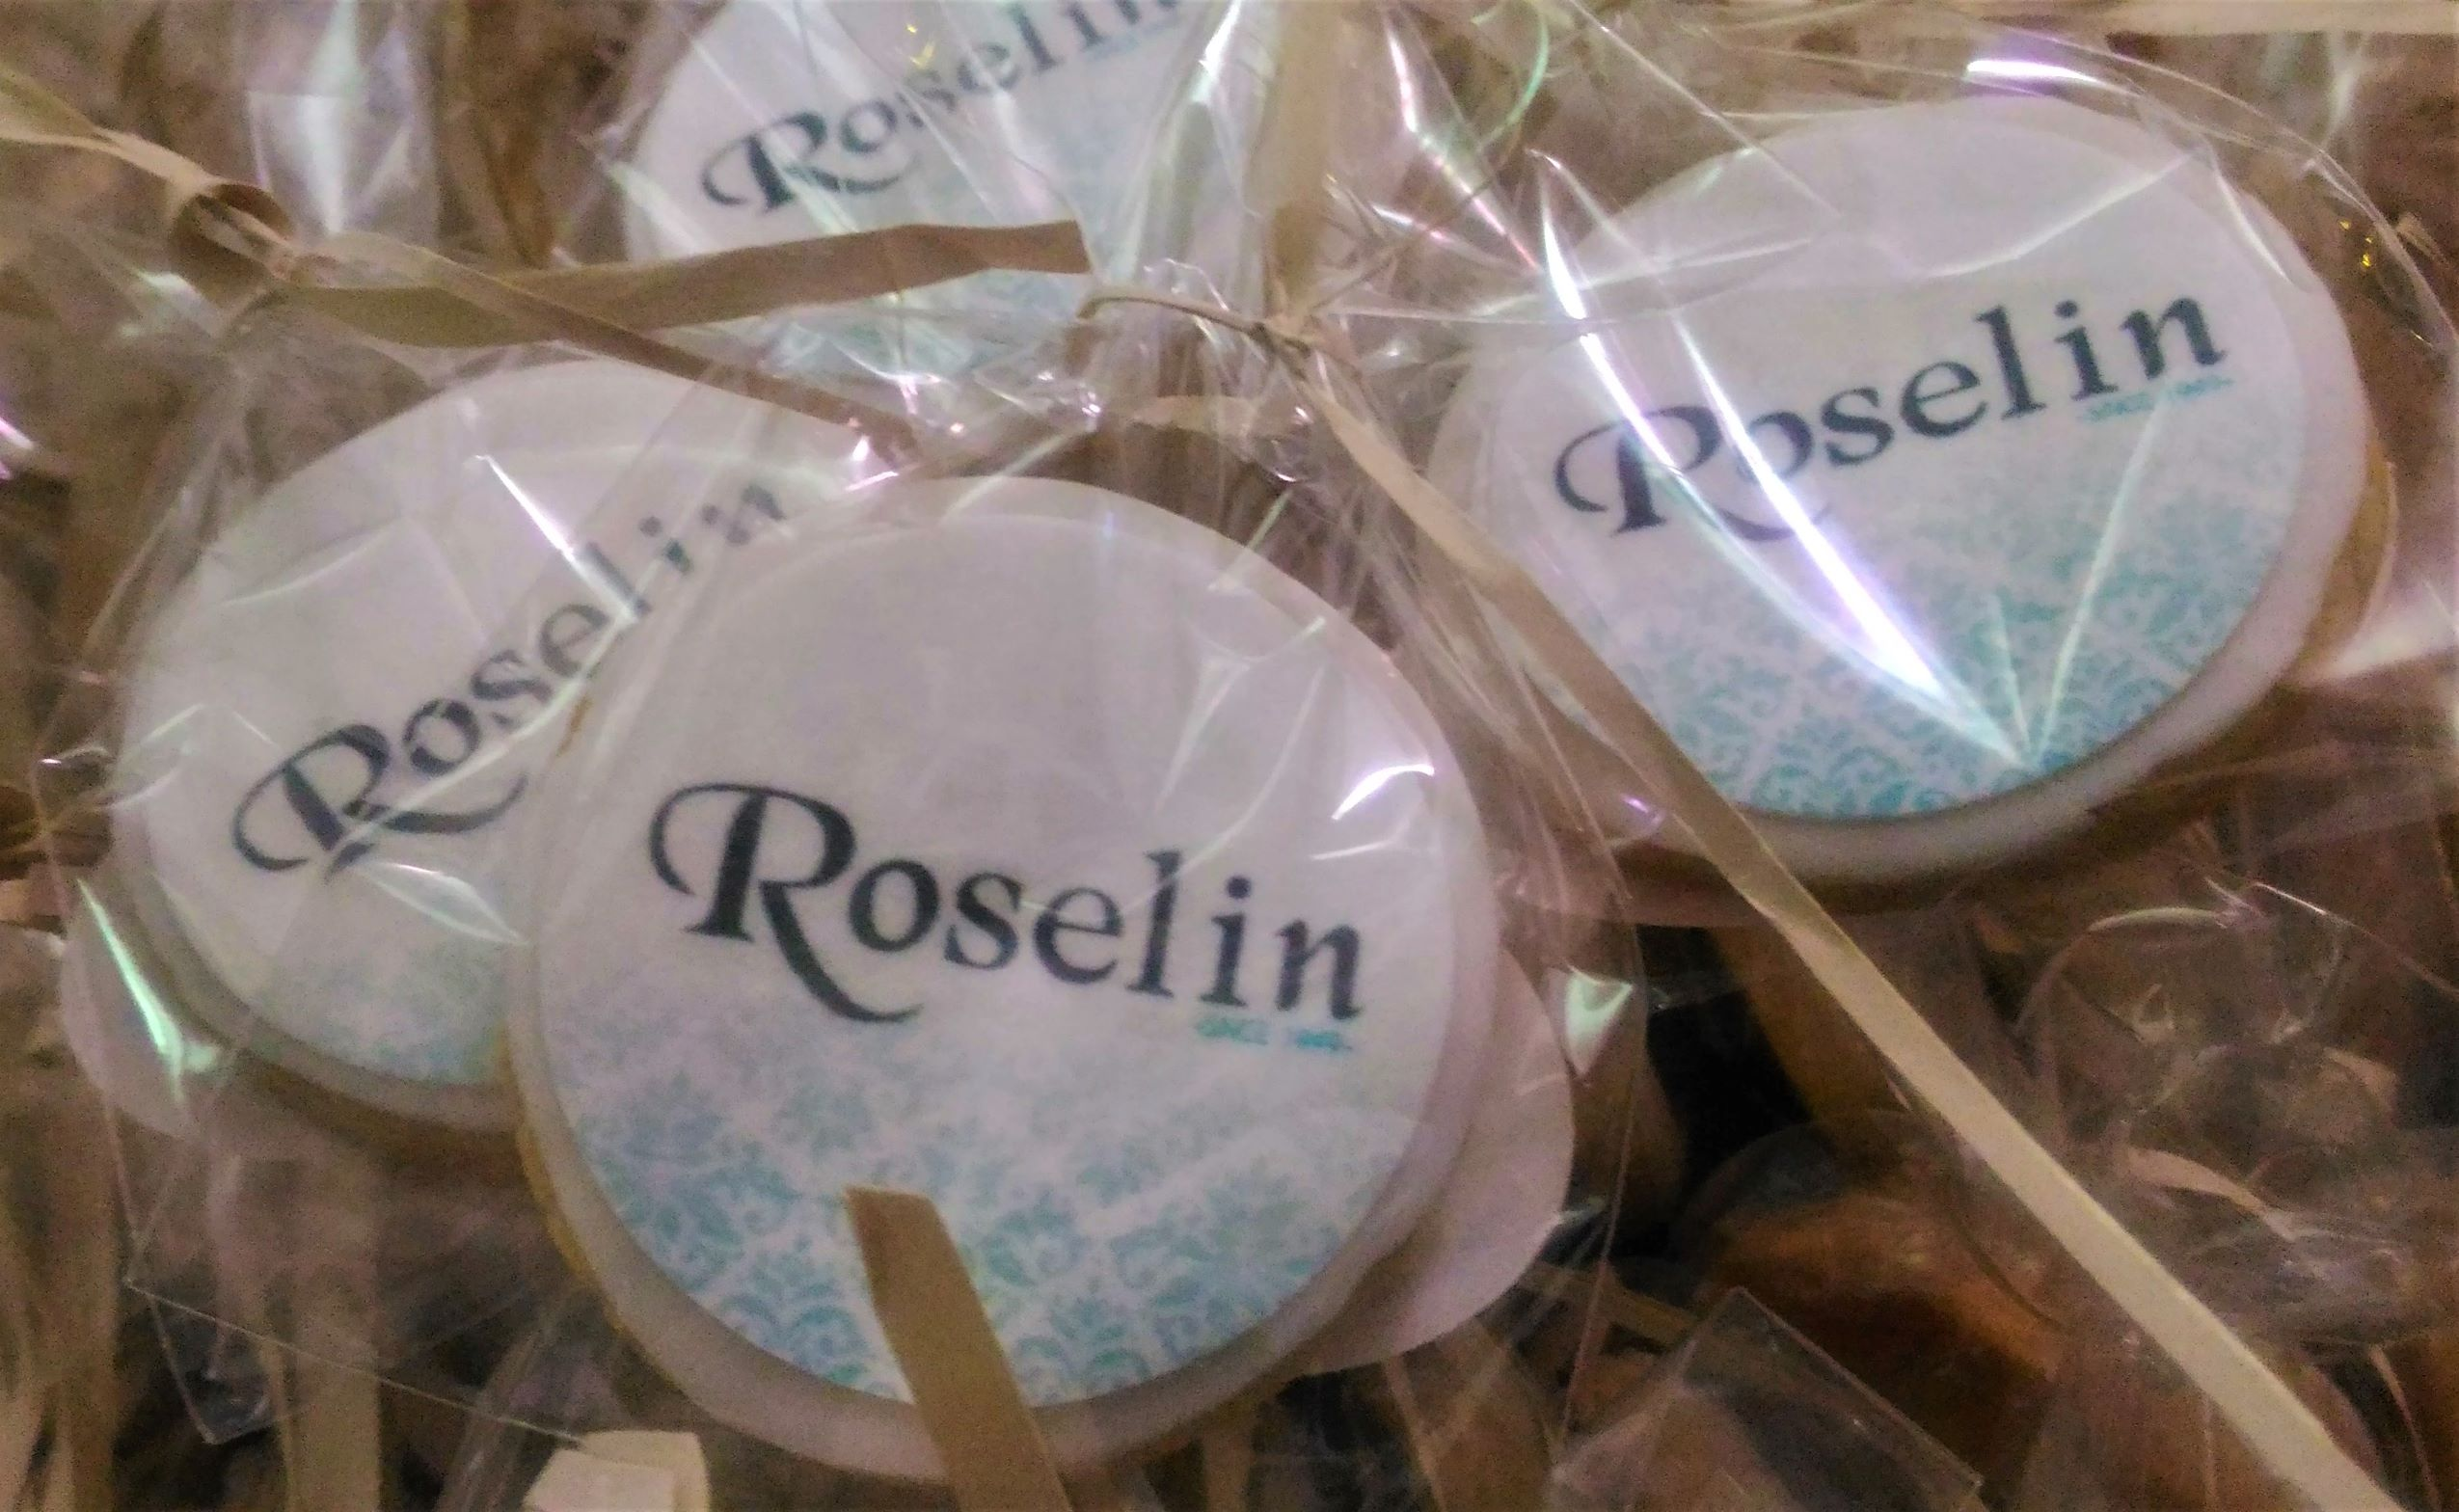 Galleta Roselin web